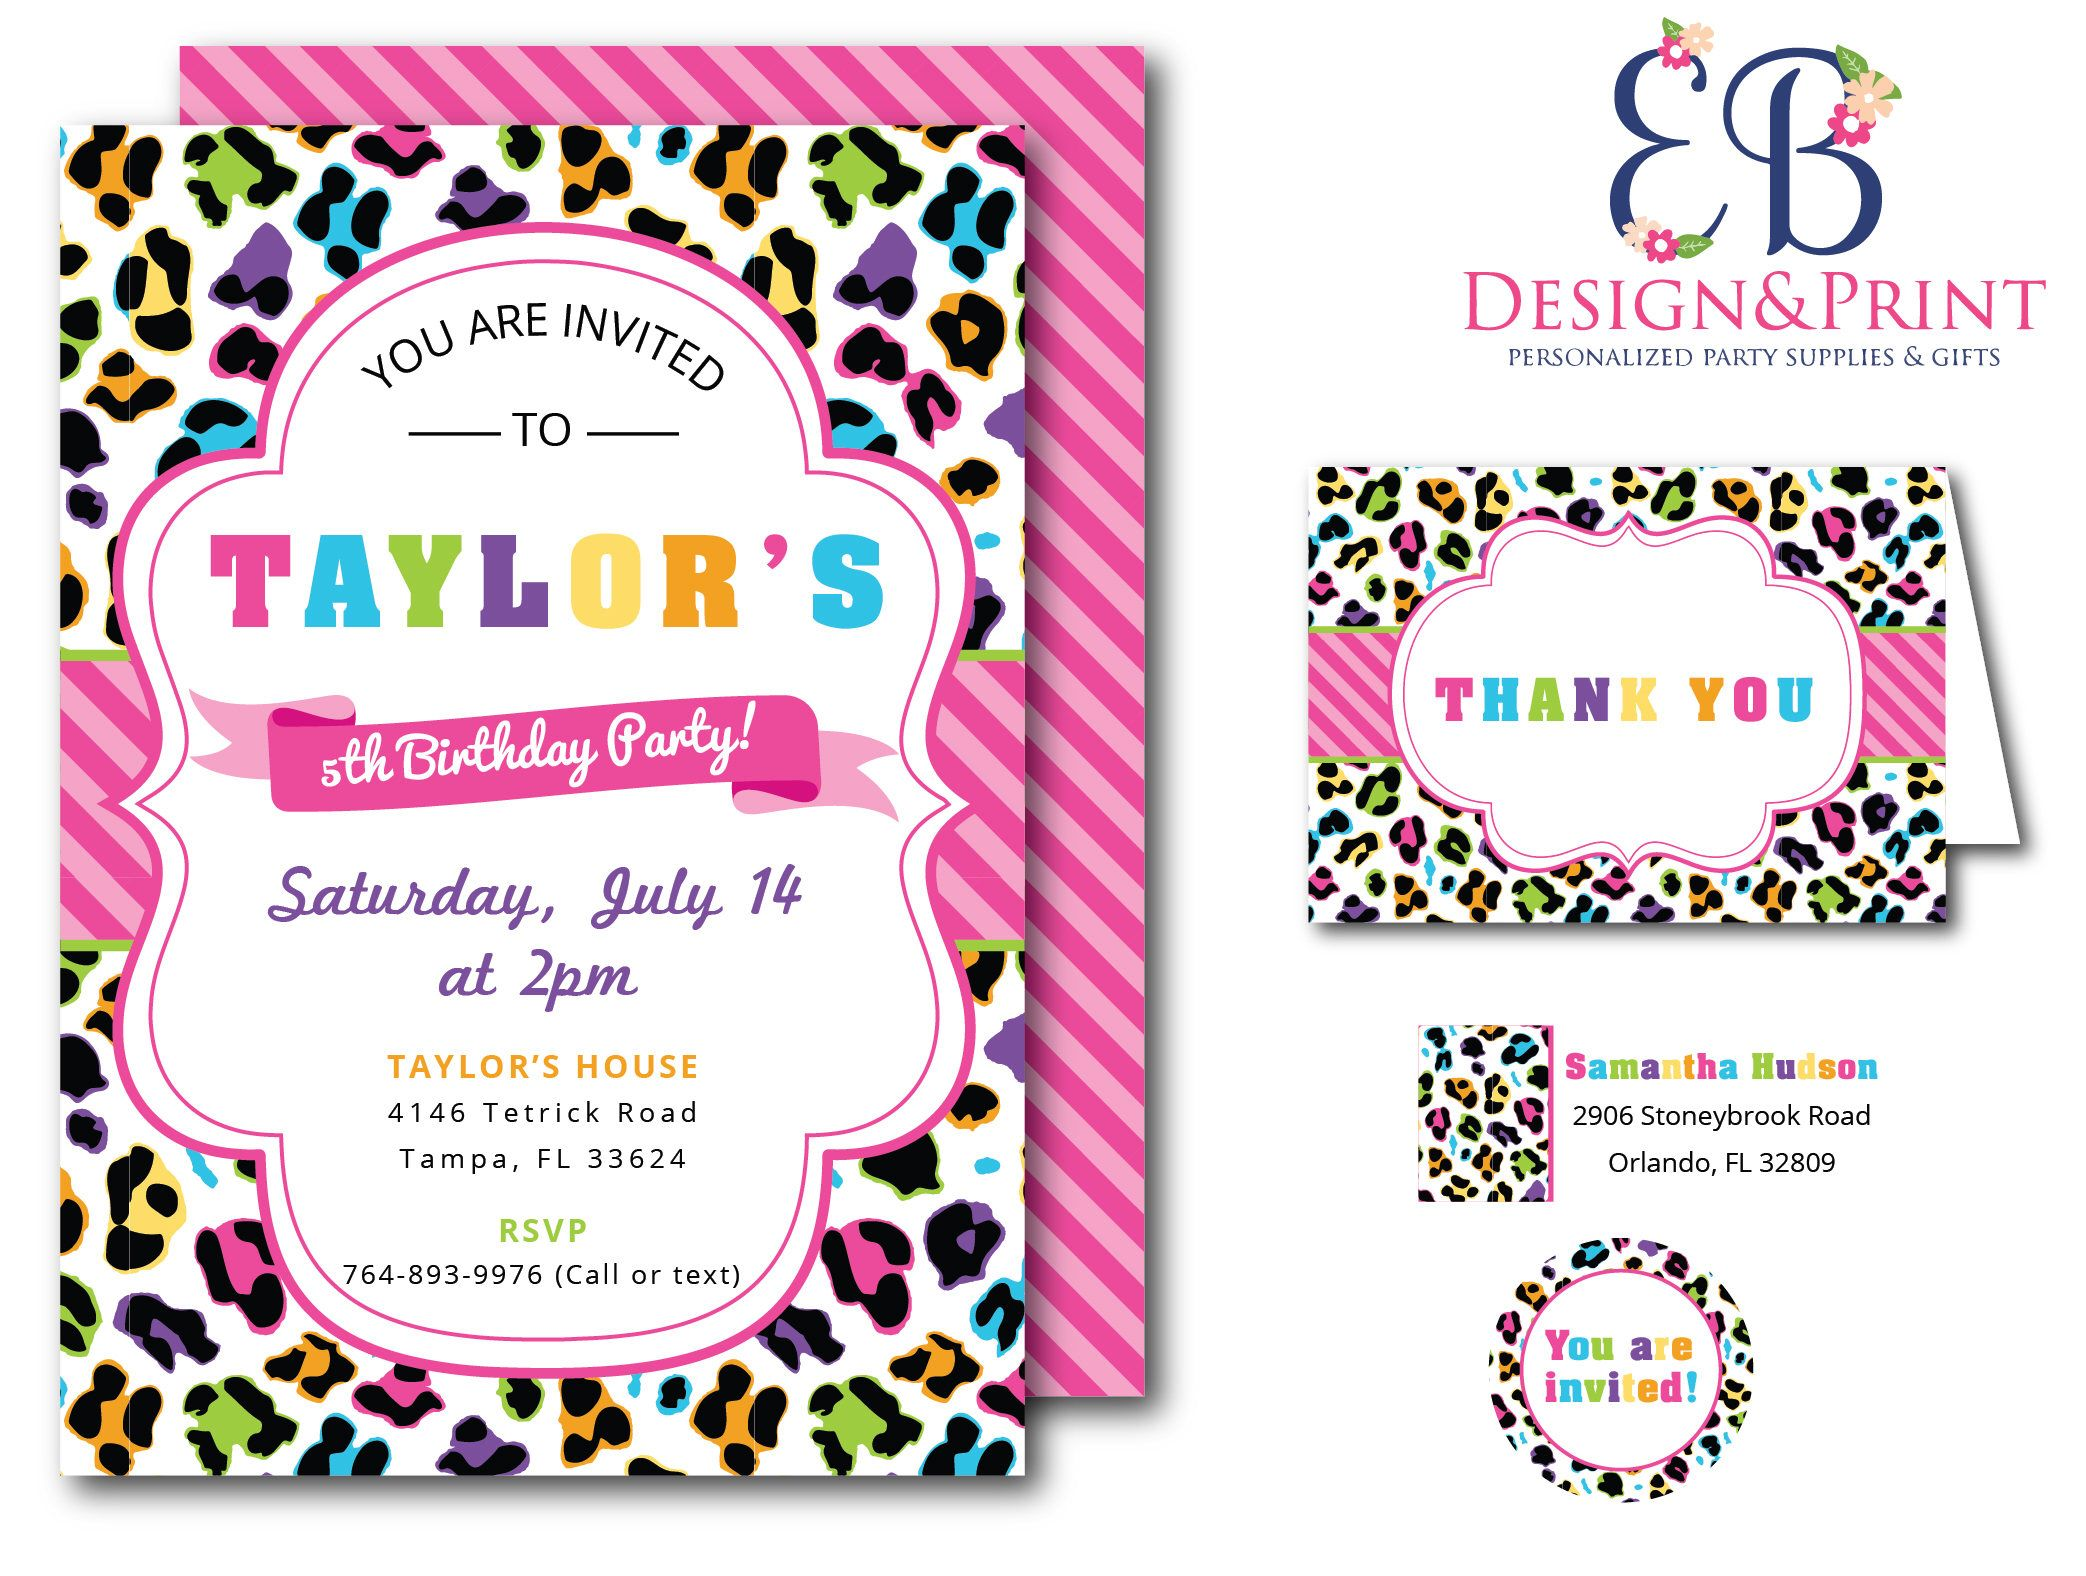 Rainbow Leopard Birthday Party Invitations Invites Thank You Cards